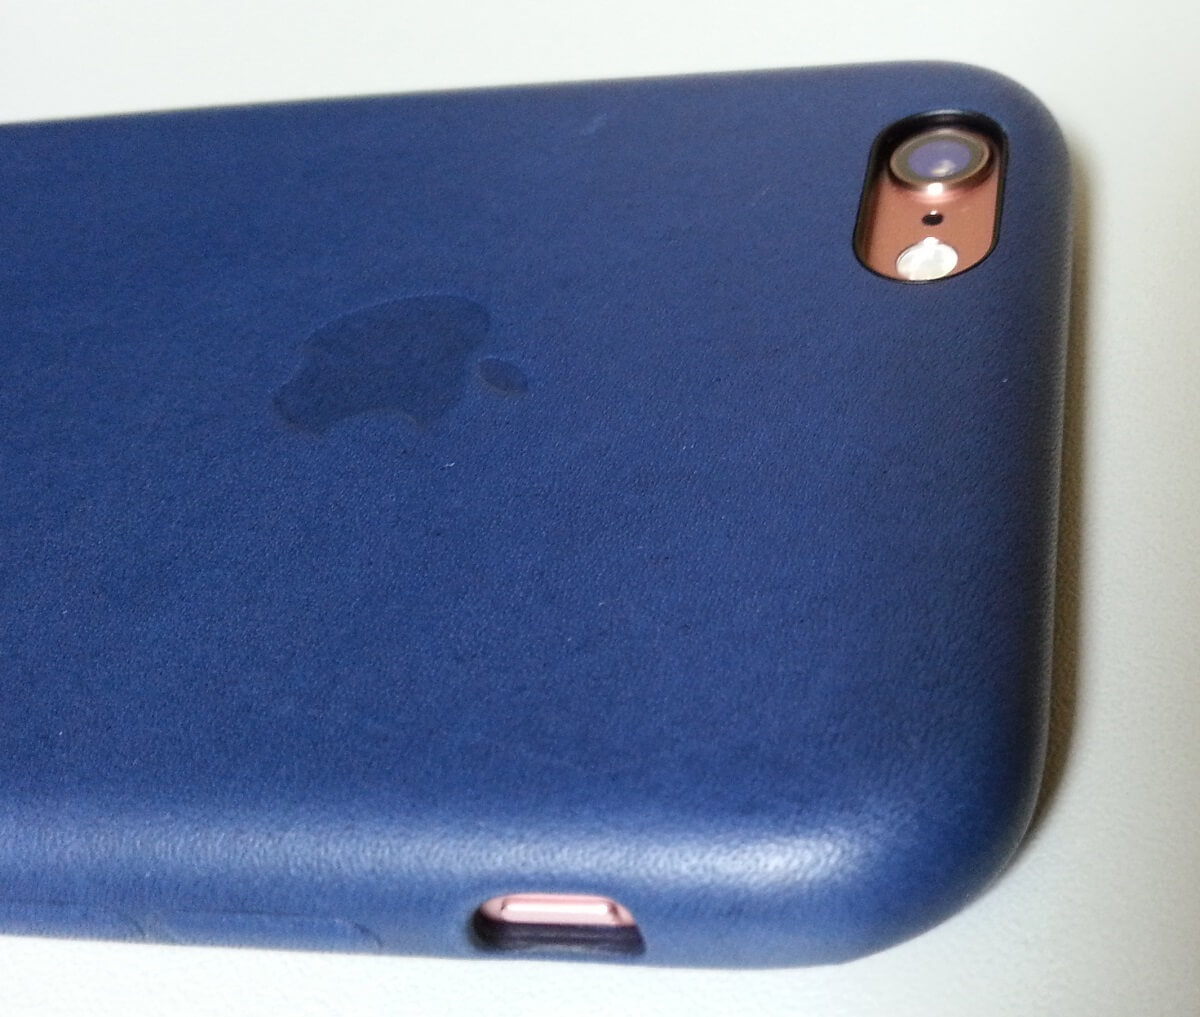 iphone6sleathercase10